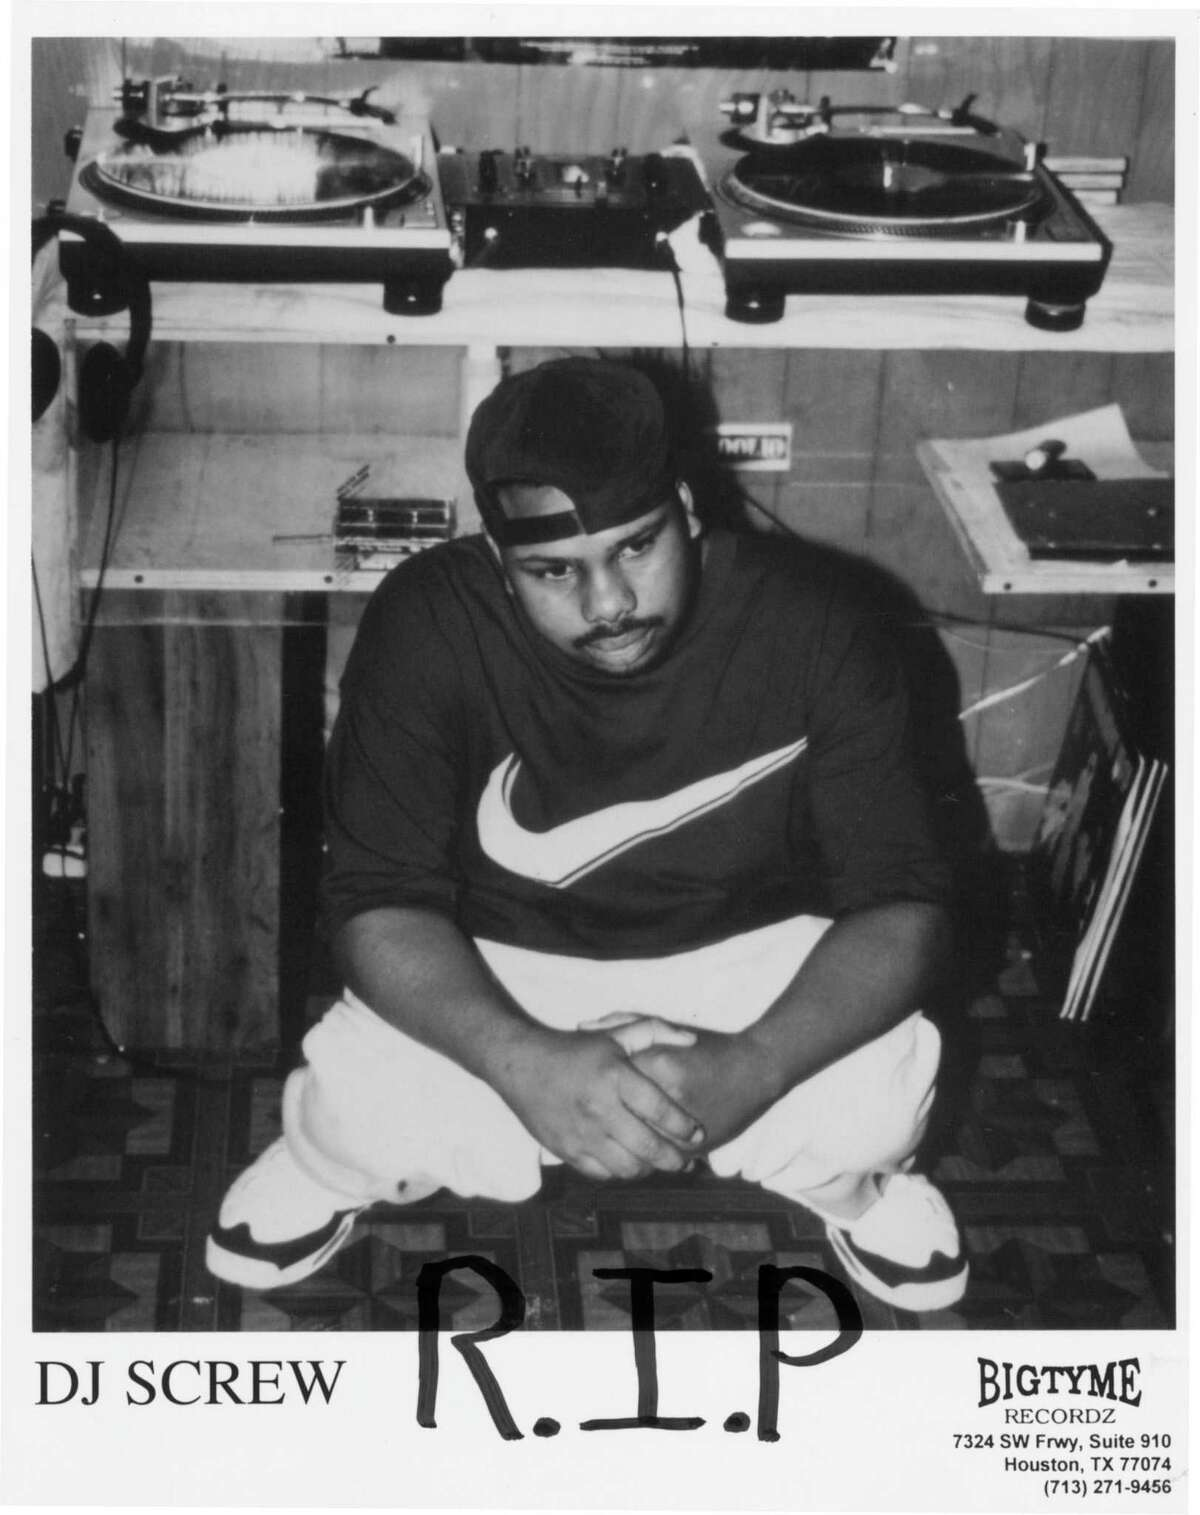 DJ Screw publicity photo with R.I.P. written on it w/ marker, four days after he died.